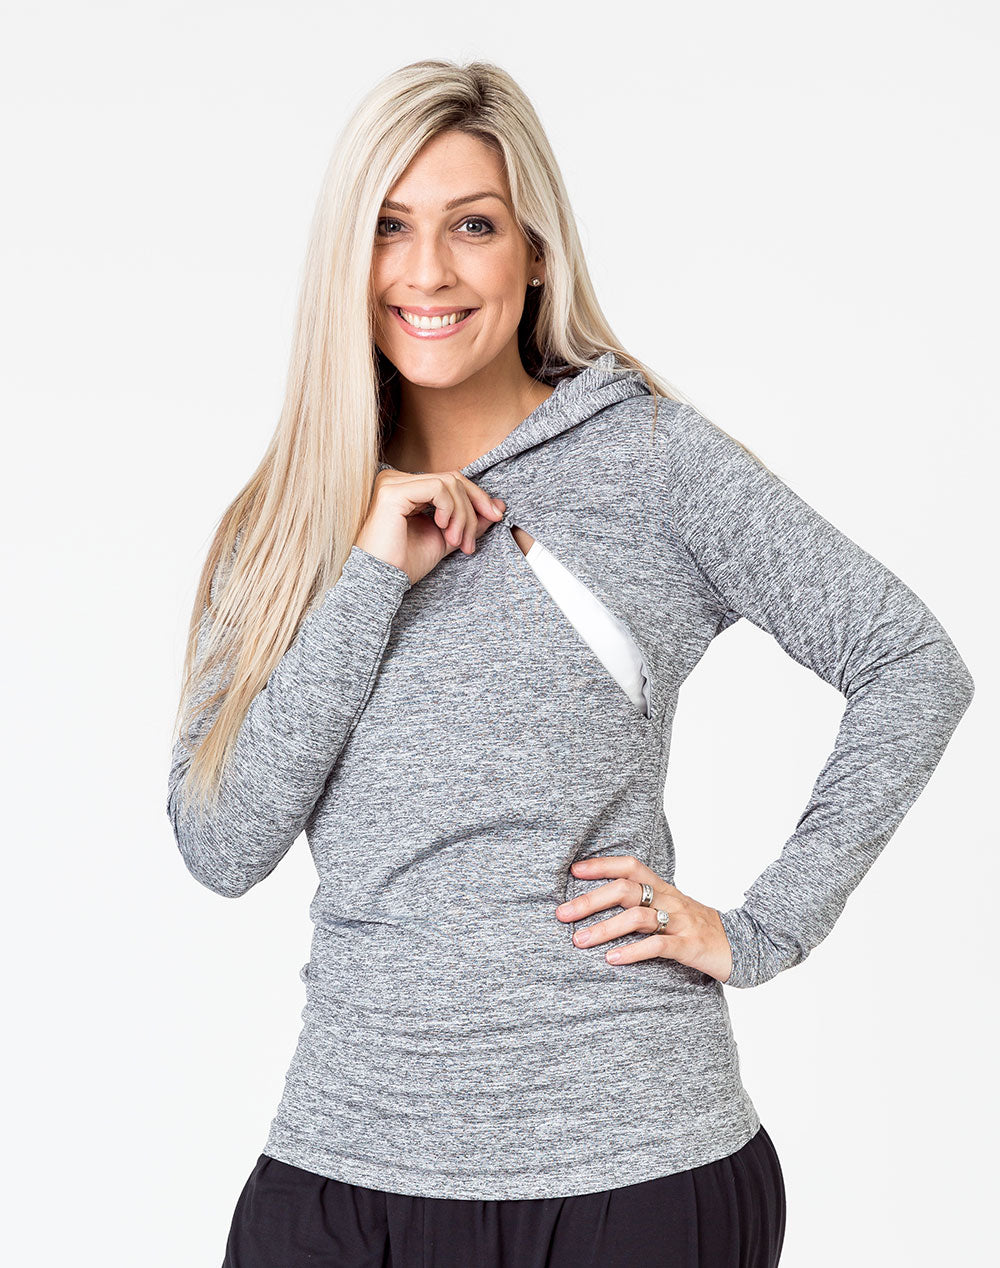 front view of a mum unzipping one invisible zip on a grey breastfeeding hoodie to breastfeed